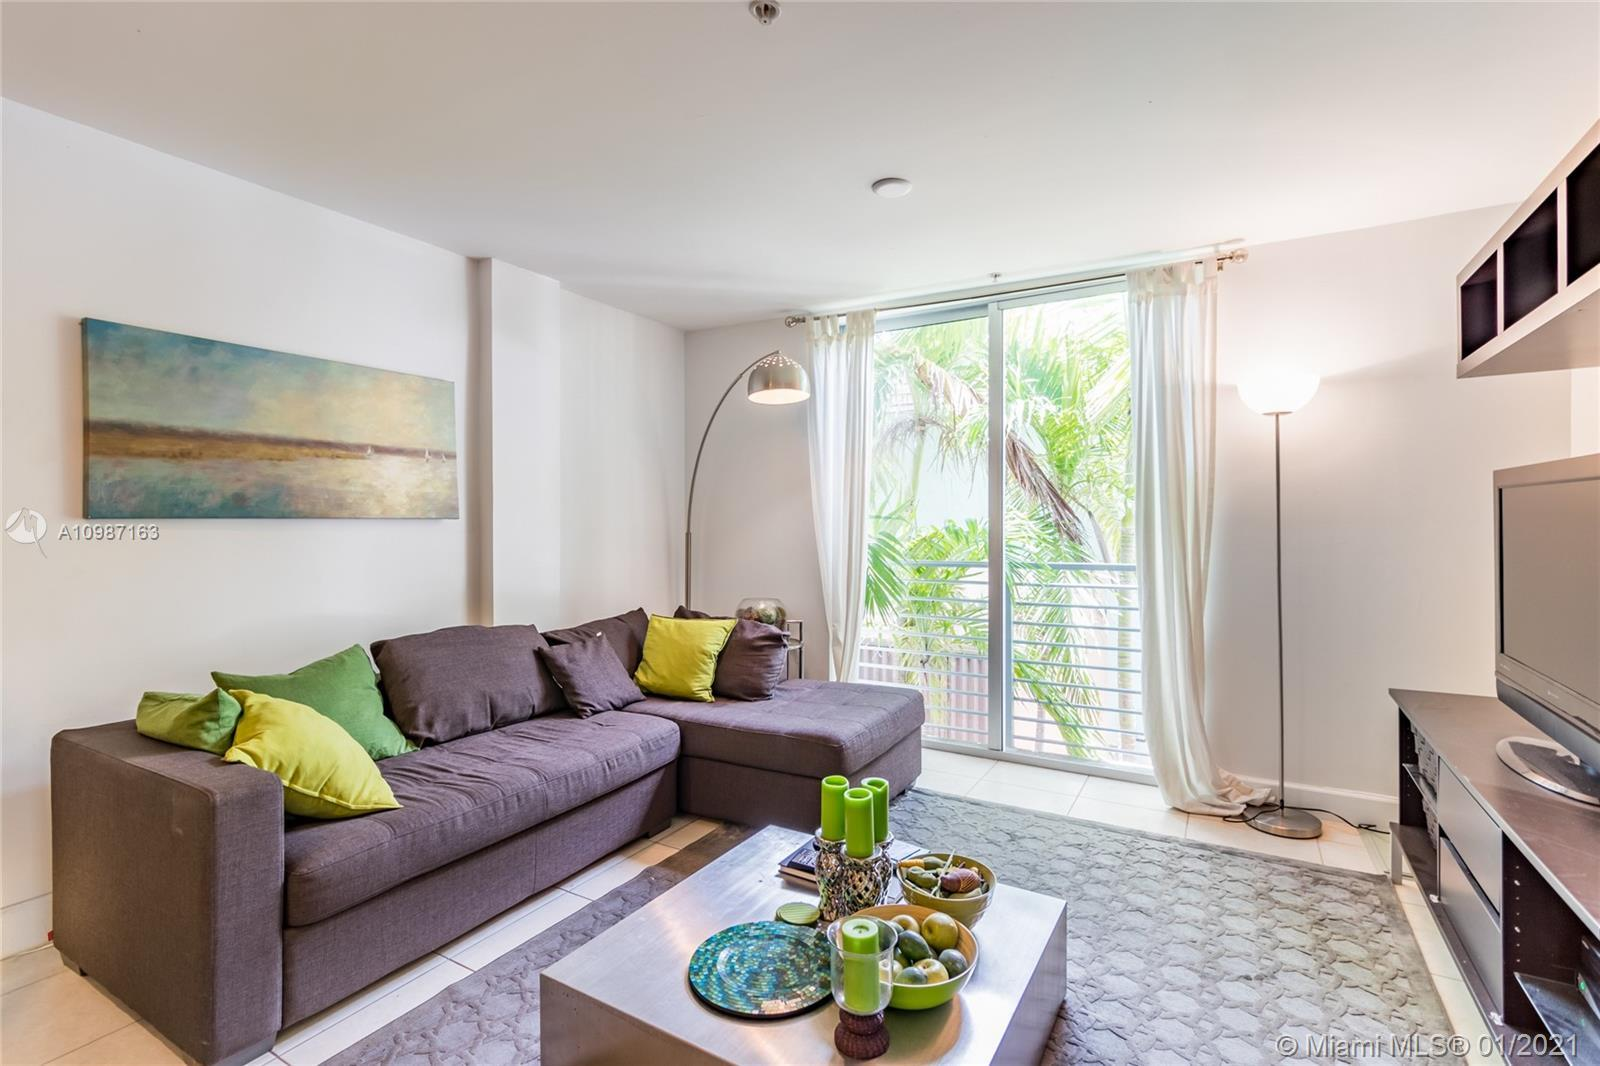 Stunning 2 bed/2.5 bath residence in the heart of South Beach. This home features a double balconies